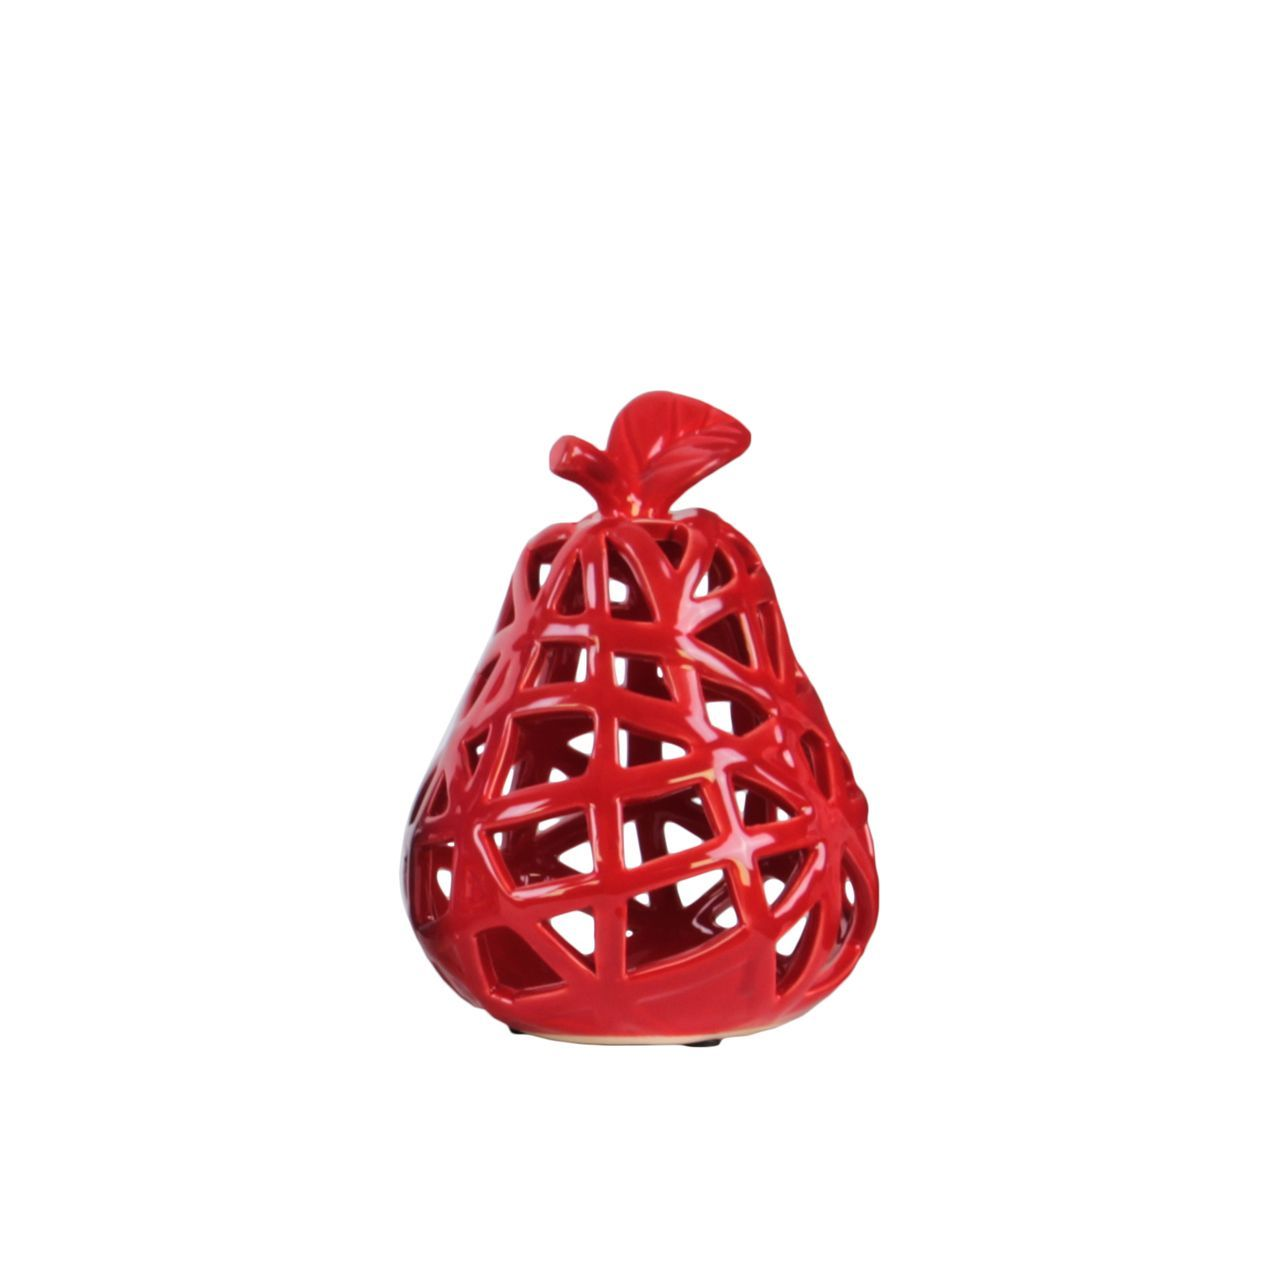 Urban Trends Collection Pear Figurine with Leaf on Stem and Cutout Design Body SM Coated Finish